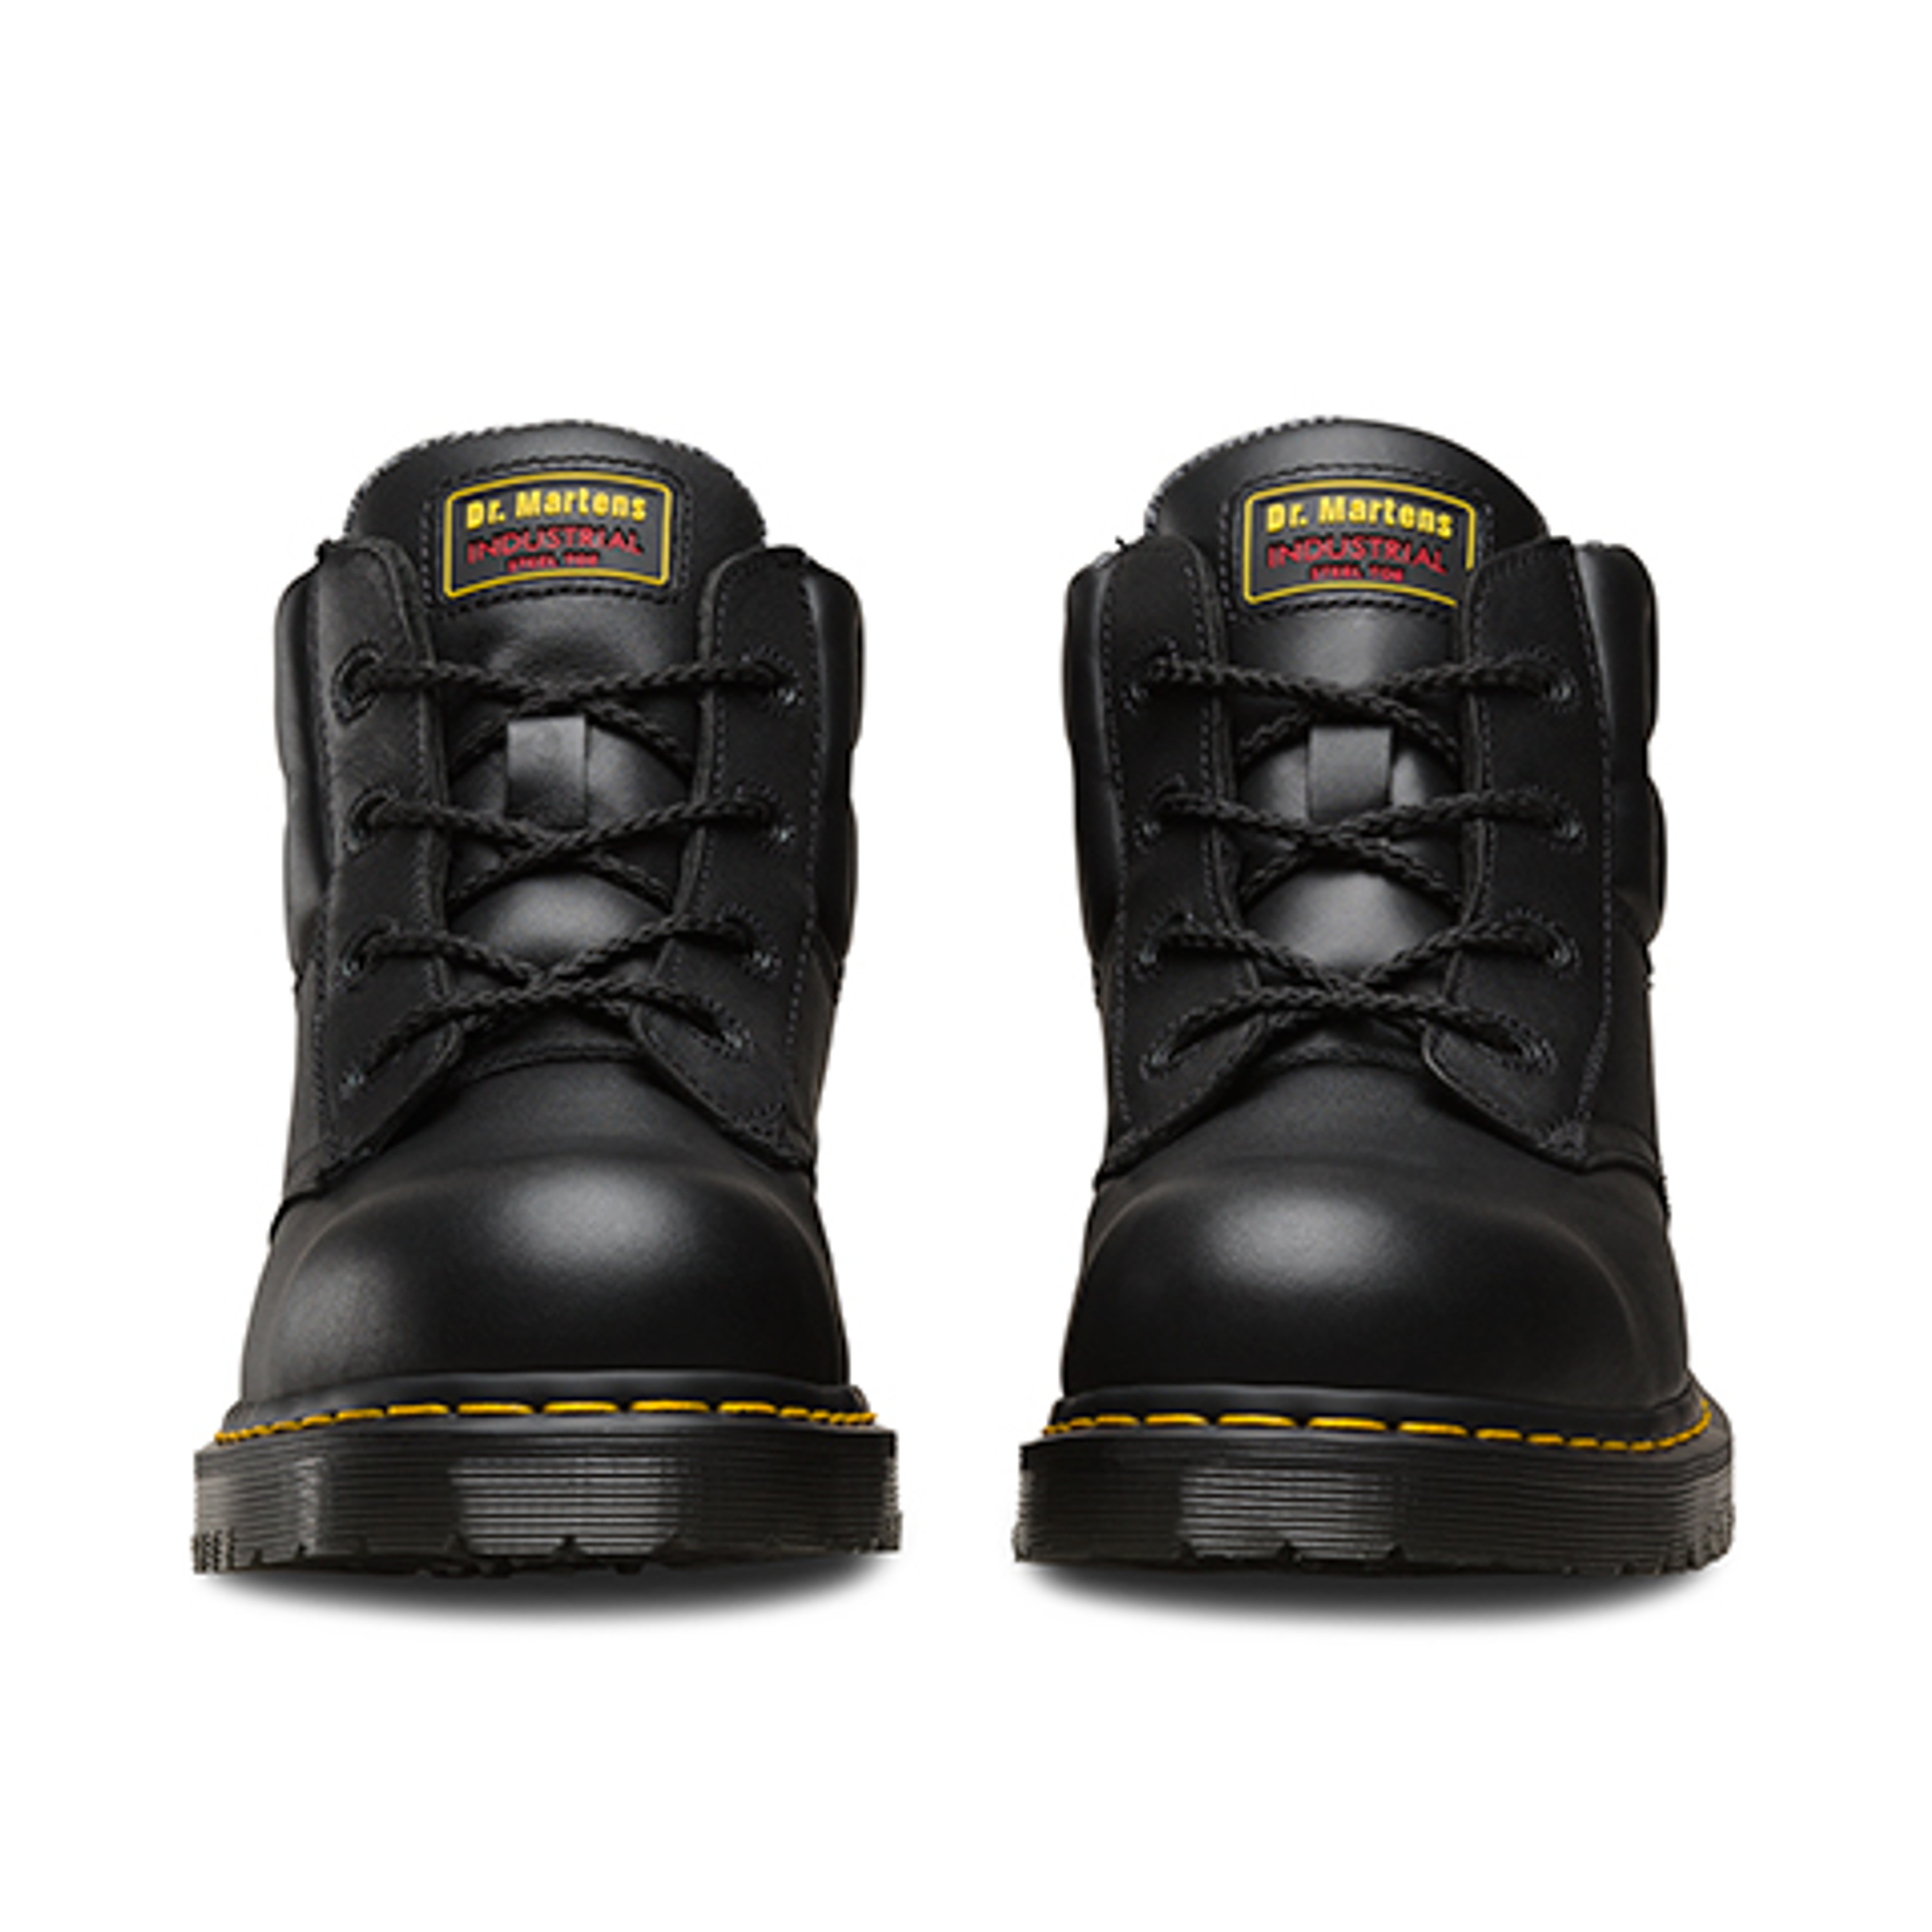 Dr Martens Icon 7B09 Black Steel Toe Cap Heavy Duty Safety Boots